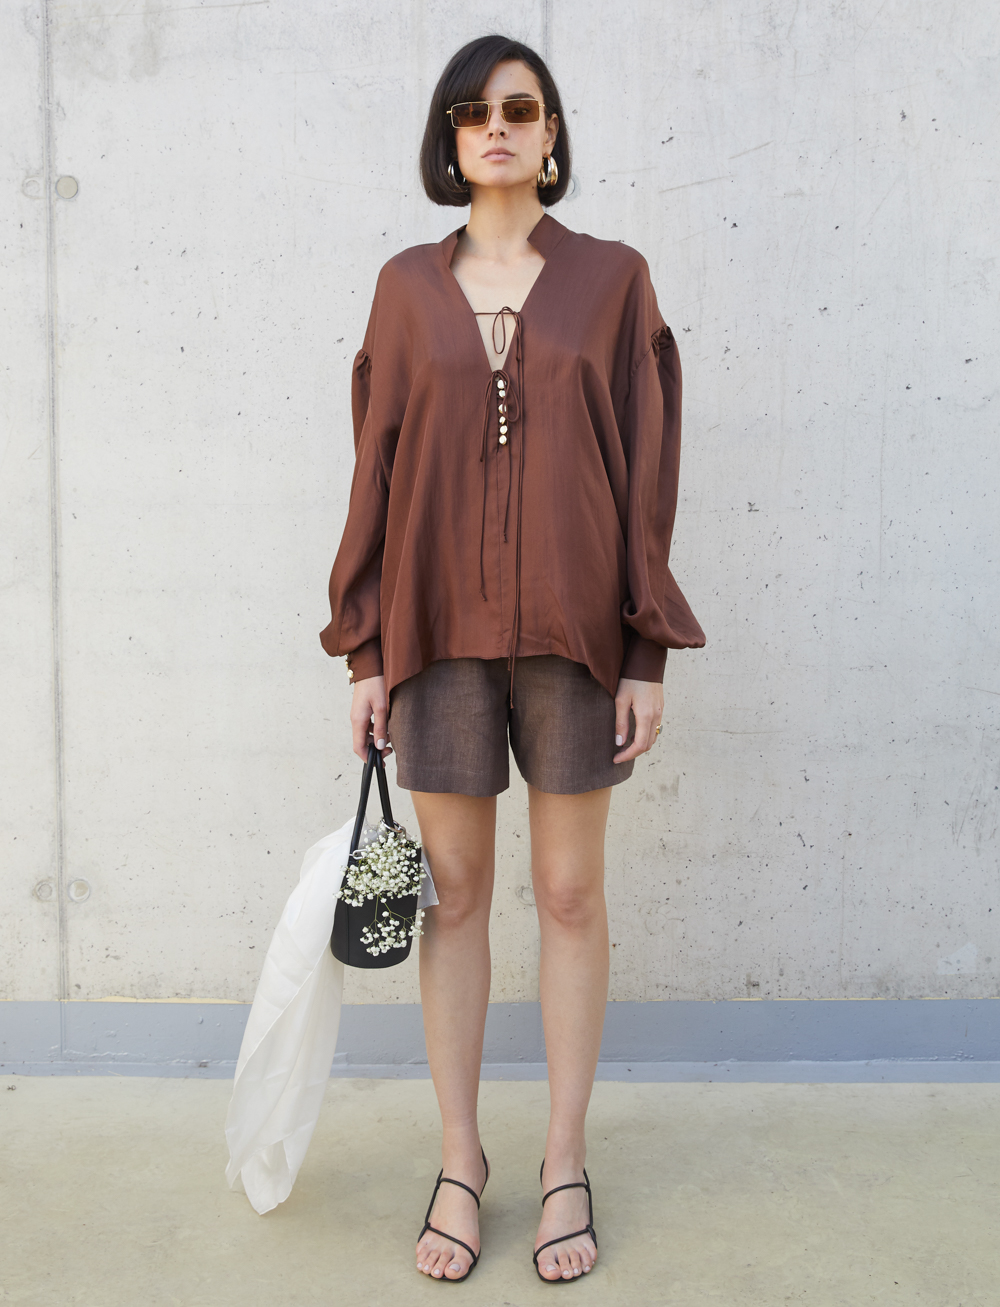 Maree Shirt - Brown by Manurí on curated-crowd.com